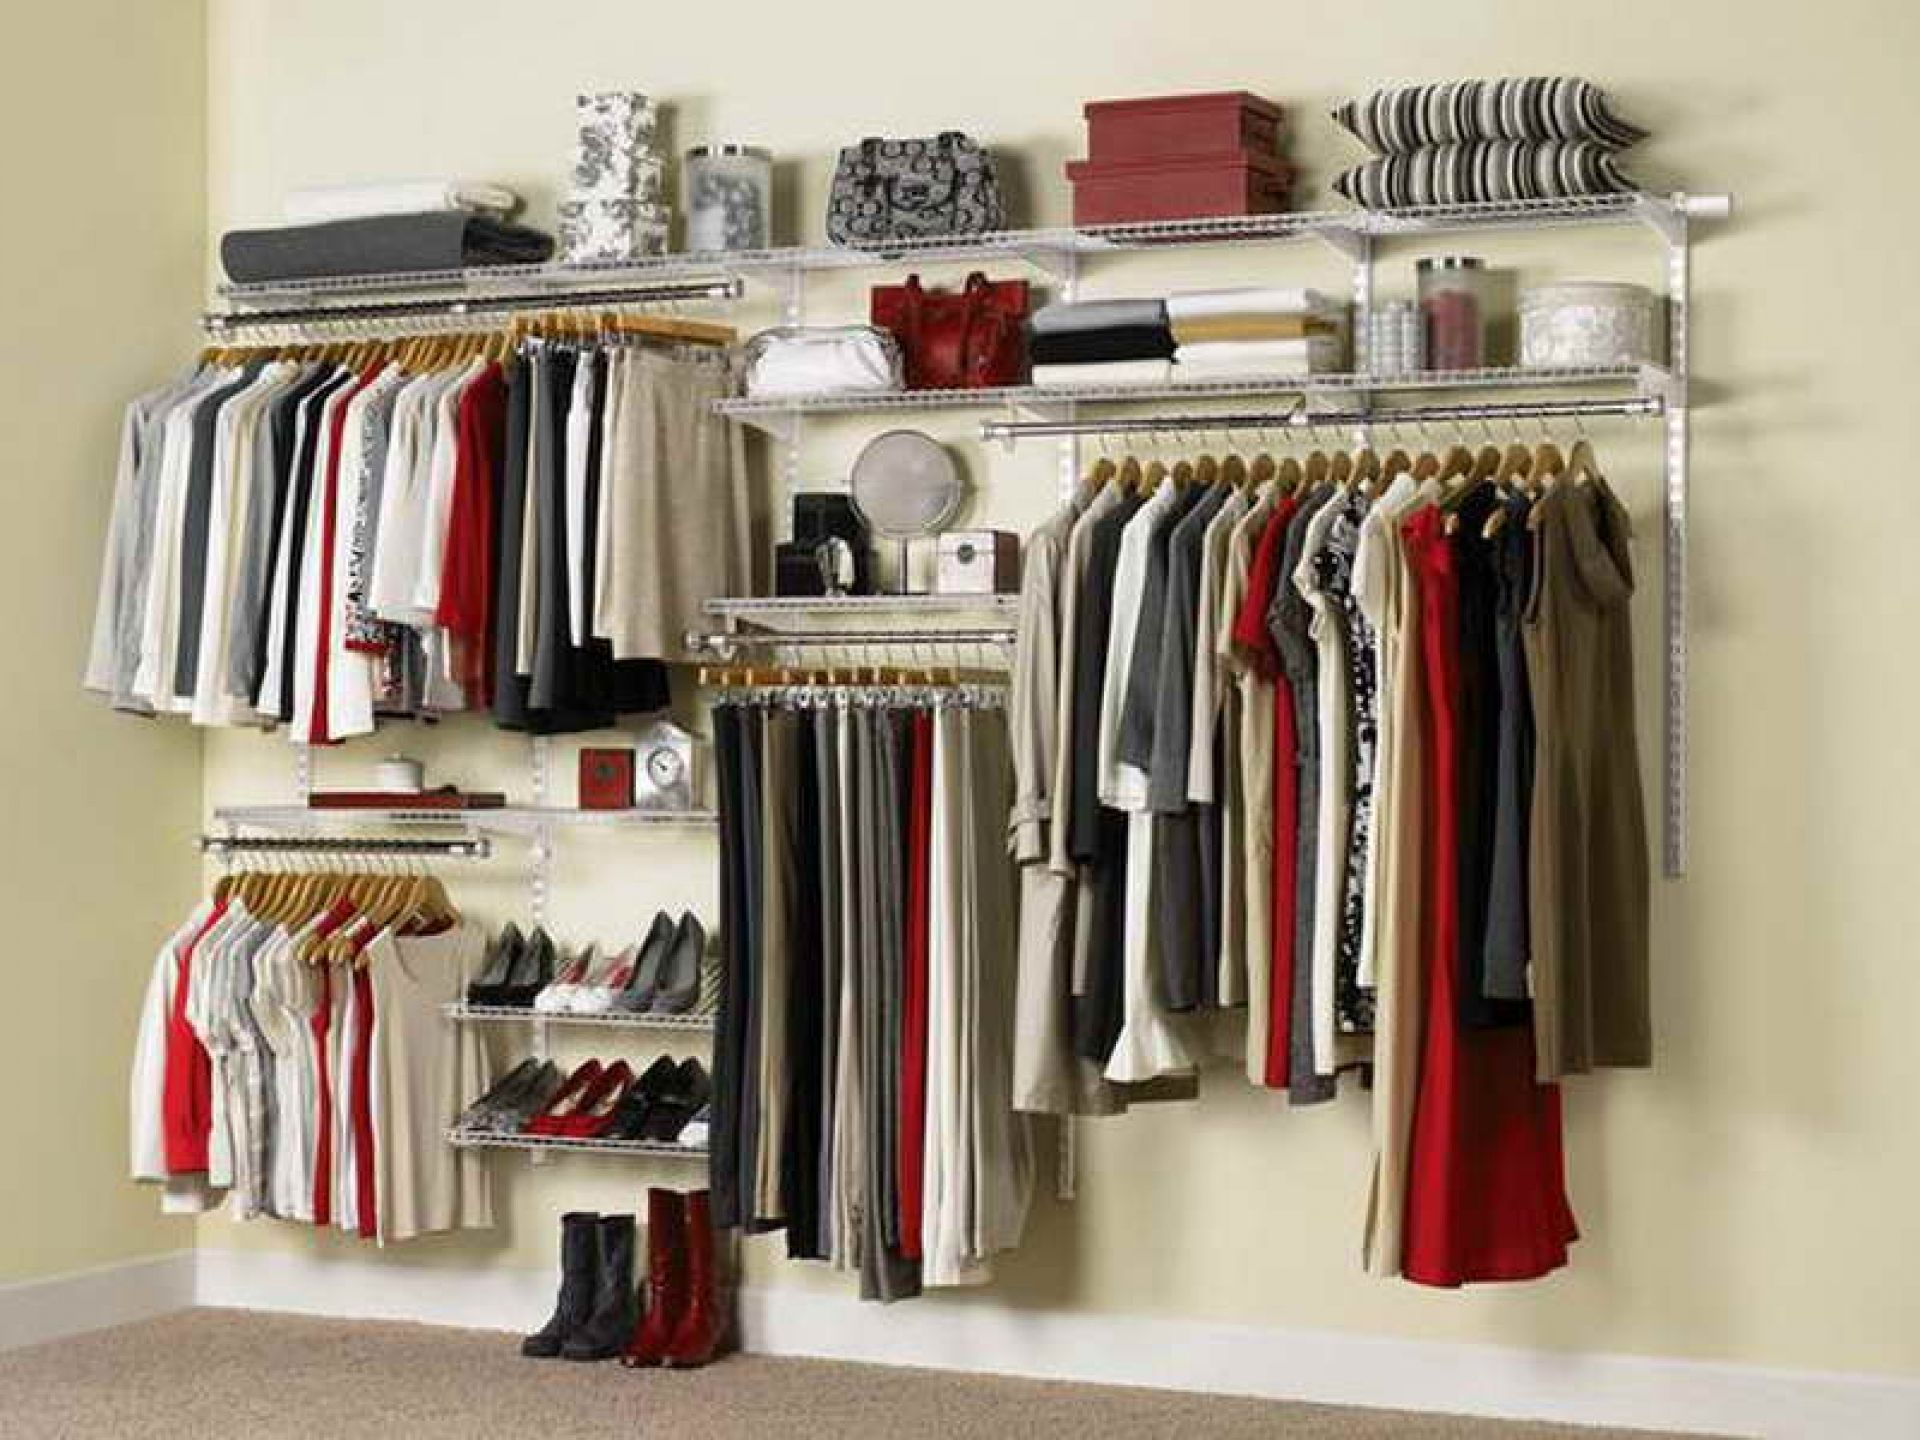 Ideas, Rubbermaid Fasttrack Closet Design Rubbermaid Fasttrack Closet  Design Rubbermaid Closet Organizer White Closet Organizer